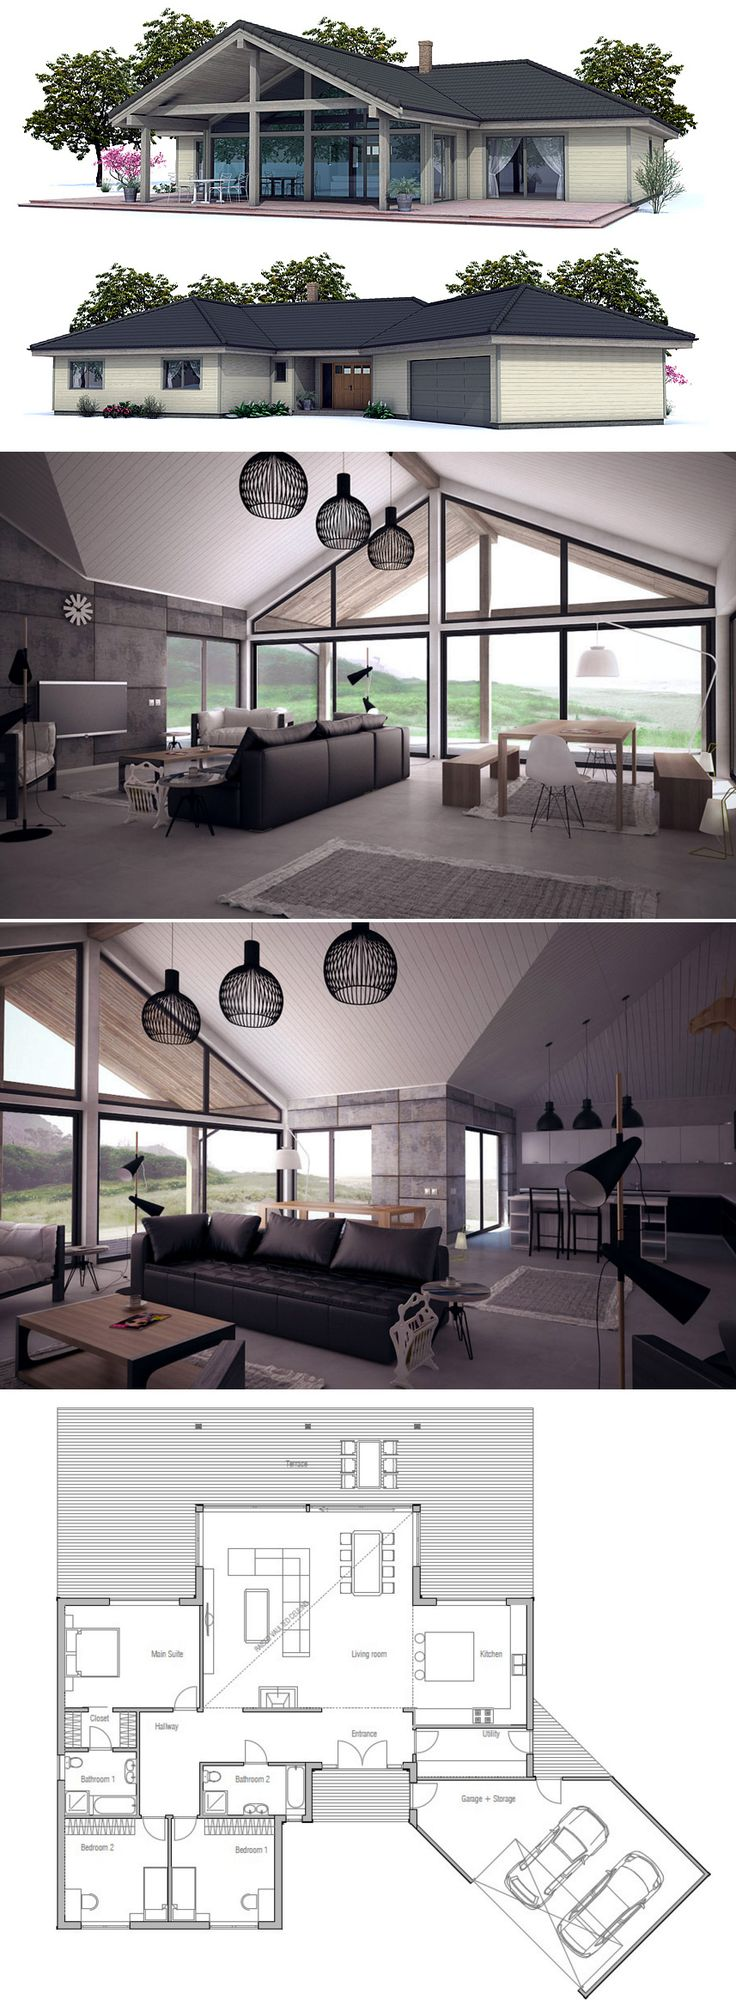 best 25 free floor plans ideas only on pinterest free house